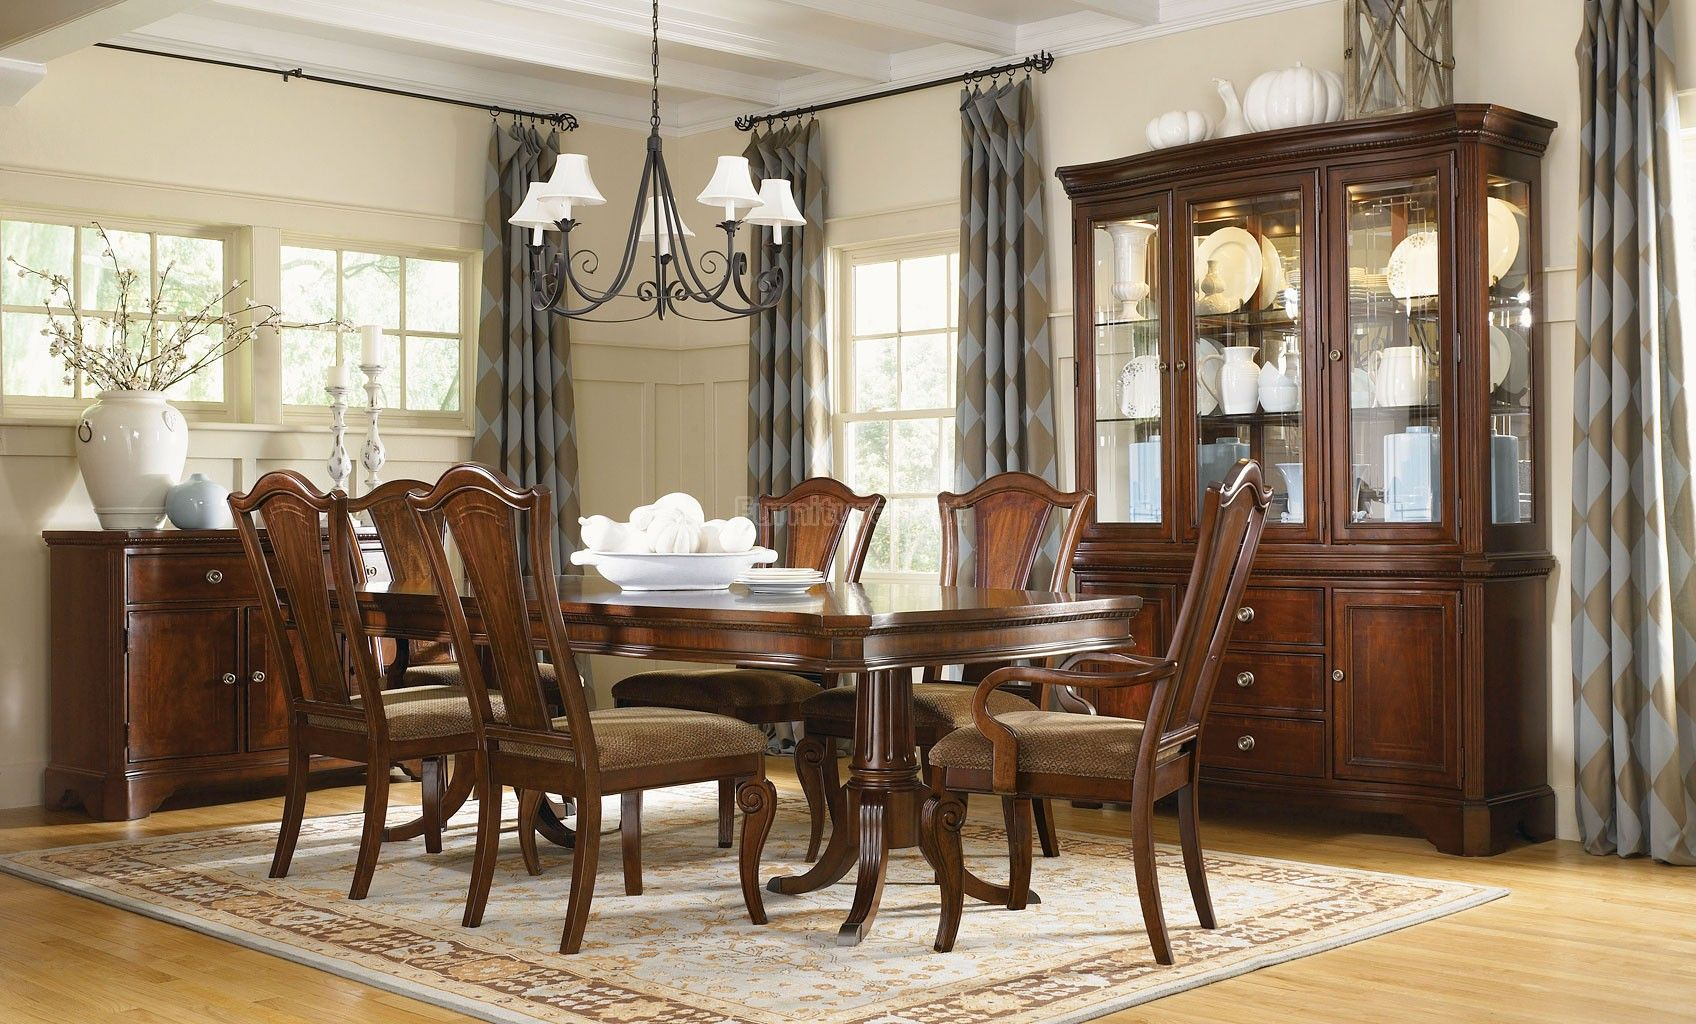 American Traditions Dining Room Set Dining room sets